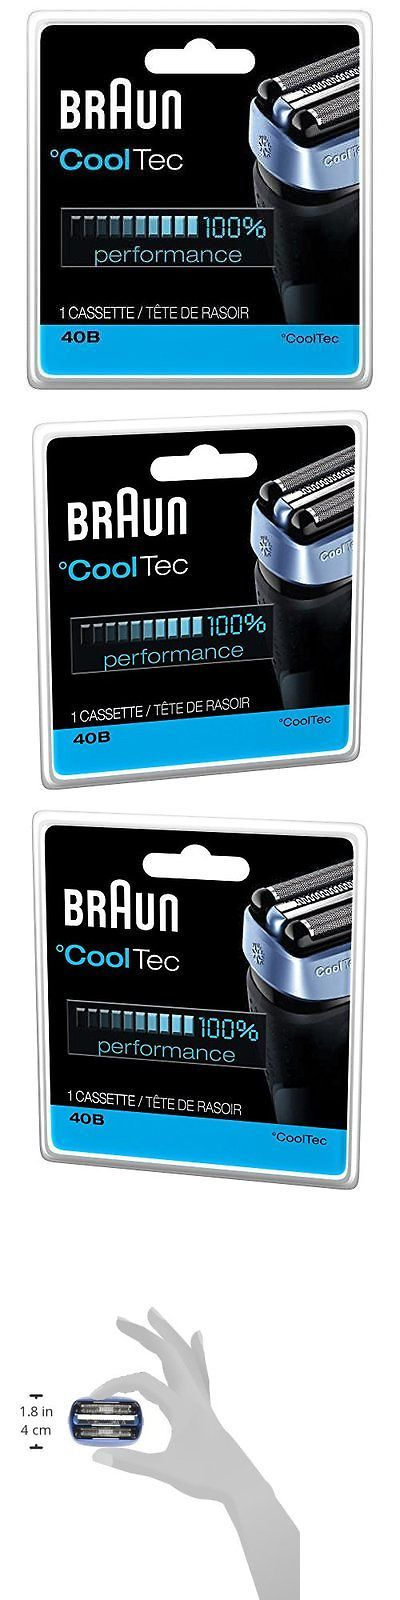 Shaver Parts and Accessories: Braun 40B Cooltec Shavers Series Replacement Shaving Foil Head And Cutter New BUY IT NOW ONLY: $36.35